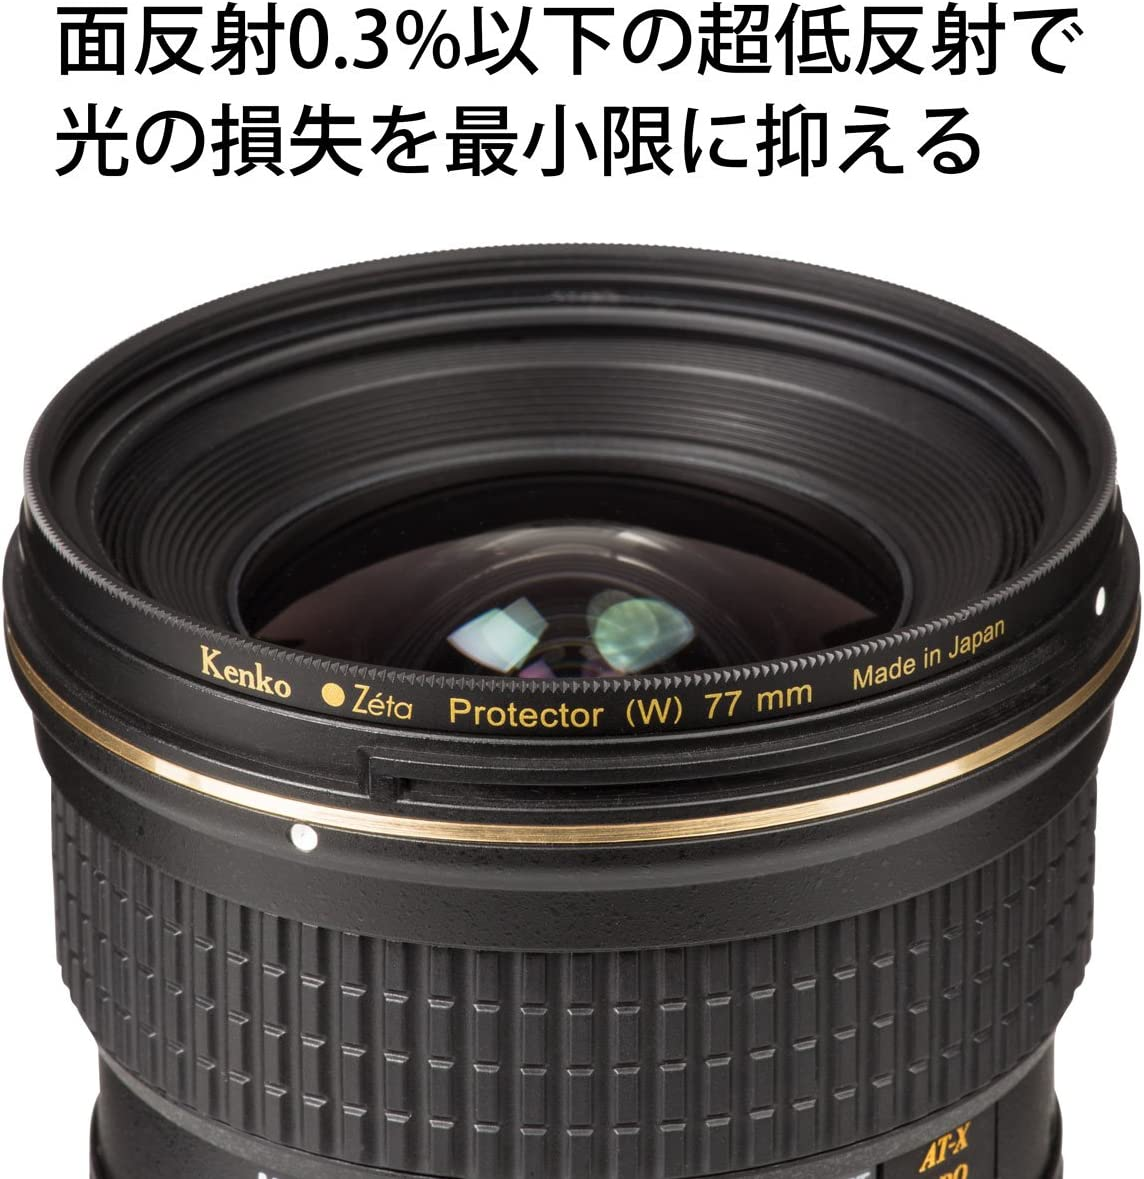 Kenko Zeta Filter for Camera 55mm Lens Protector Protection for 033 555